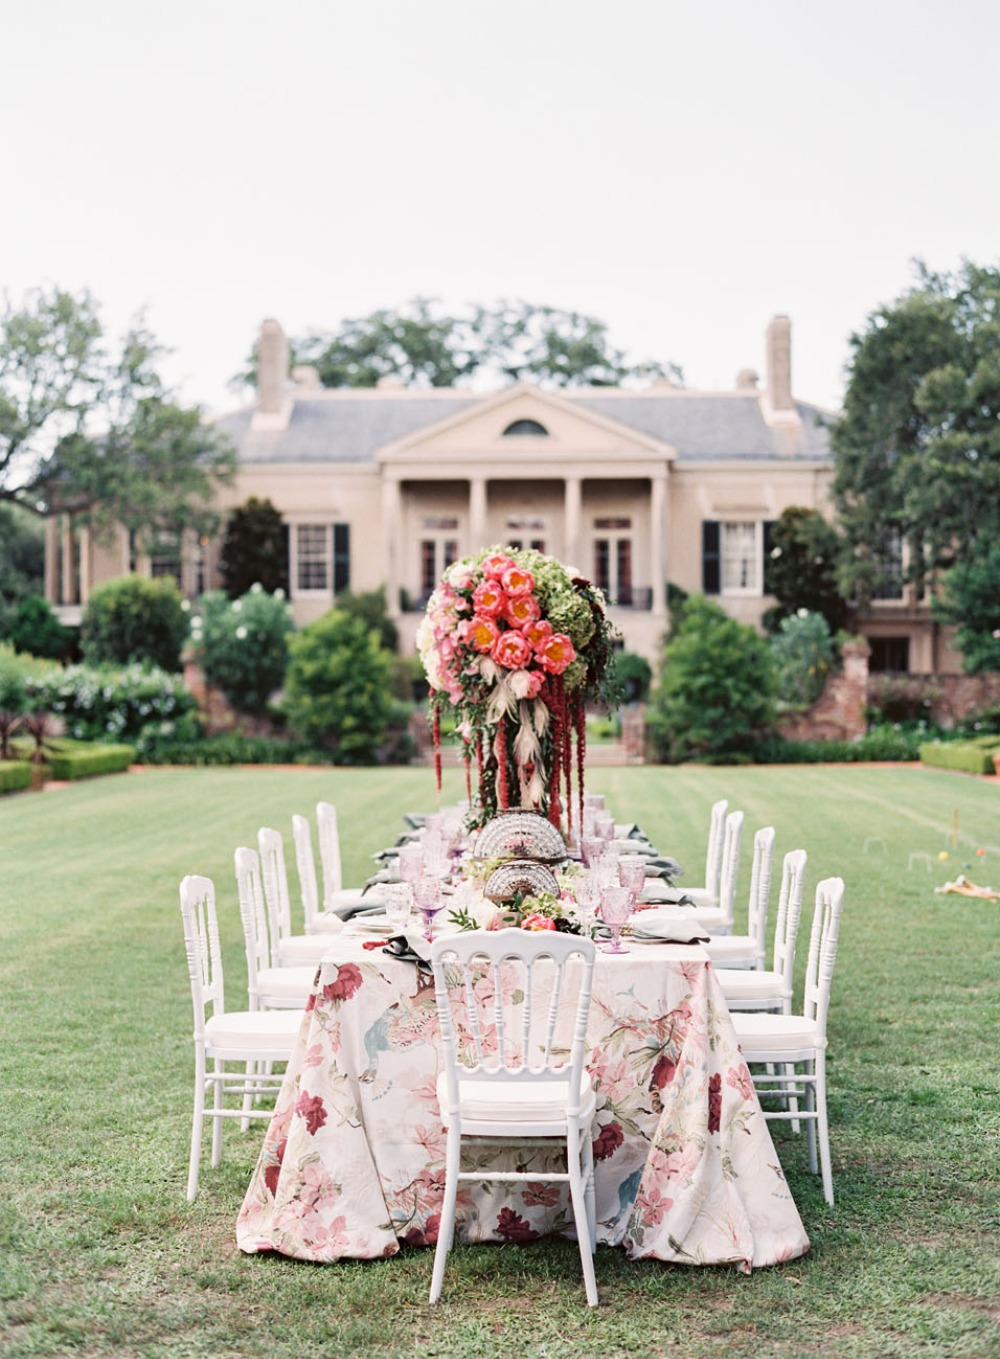 Vintage bridal luncheon ideas